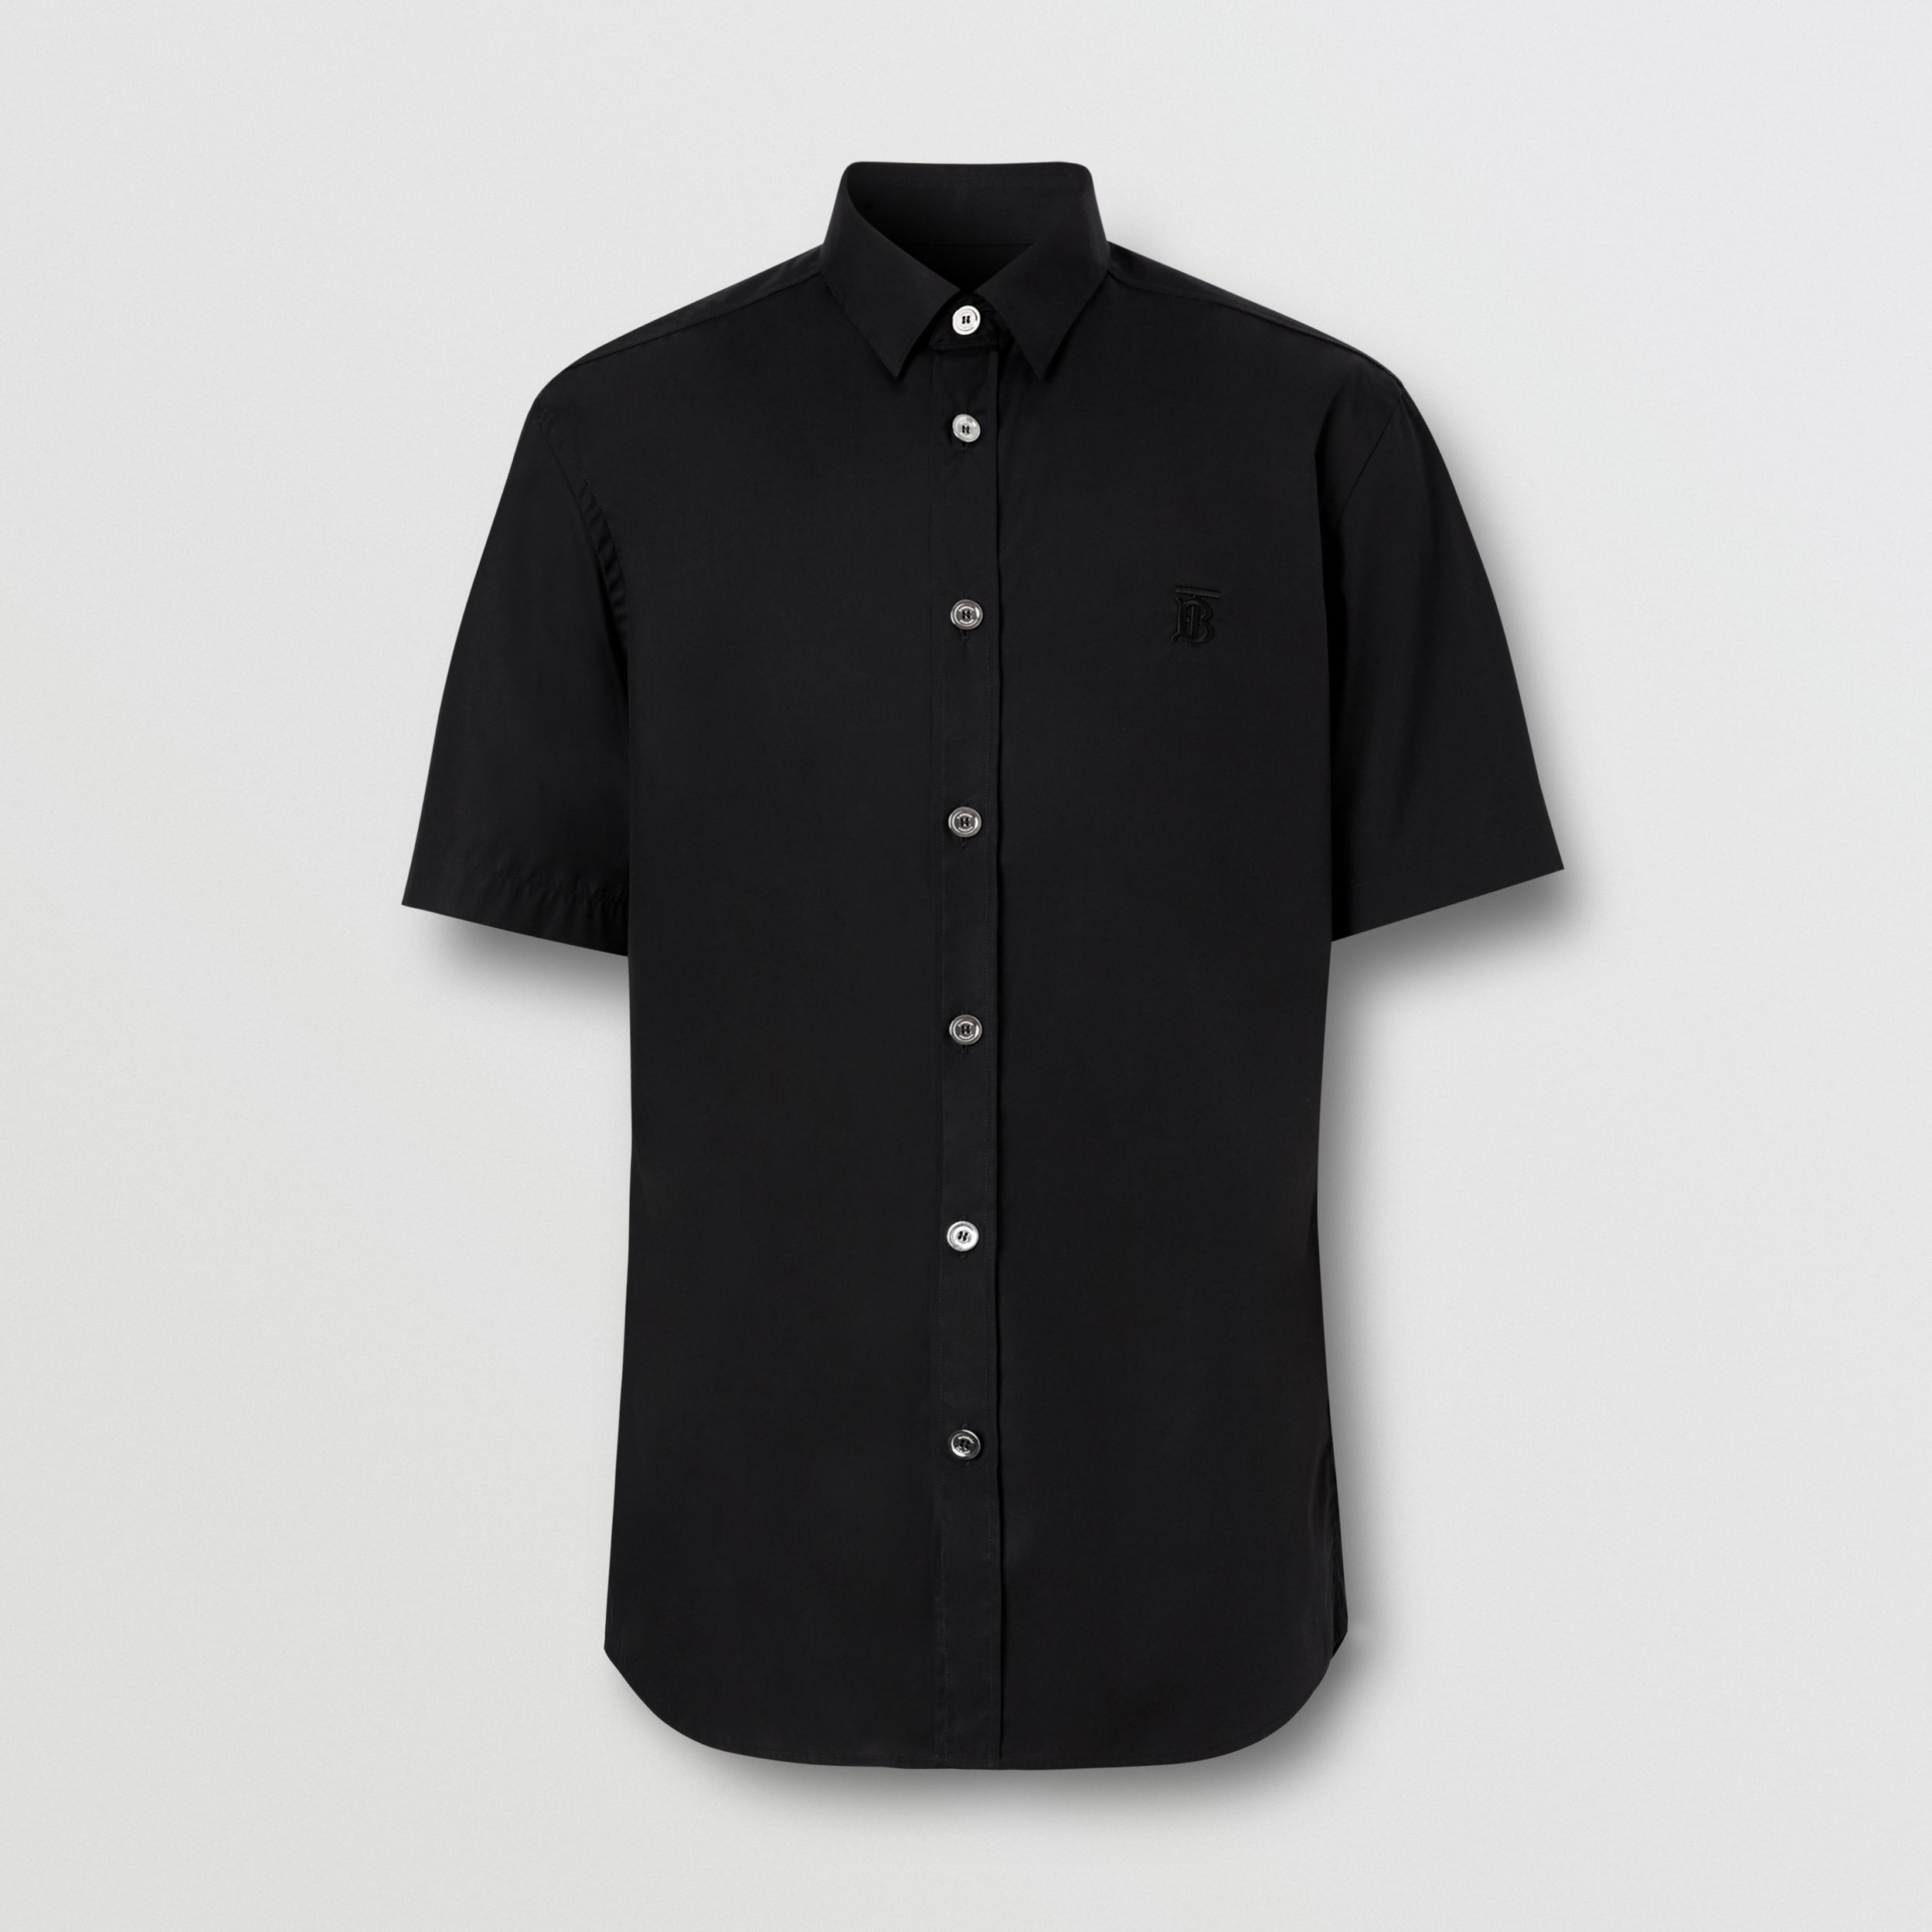 Short-sleeve Monogram Motif Stretch Cotton Shirt in Black - Men | Burberry - 4